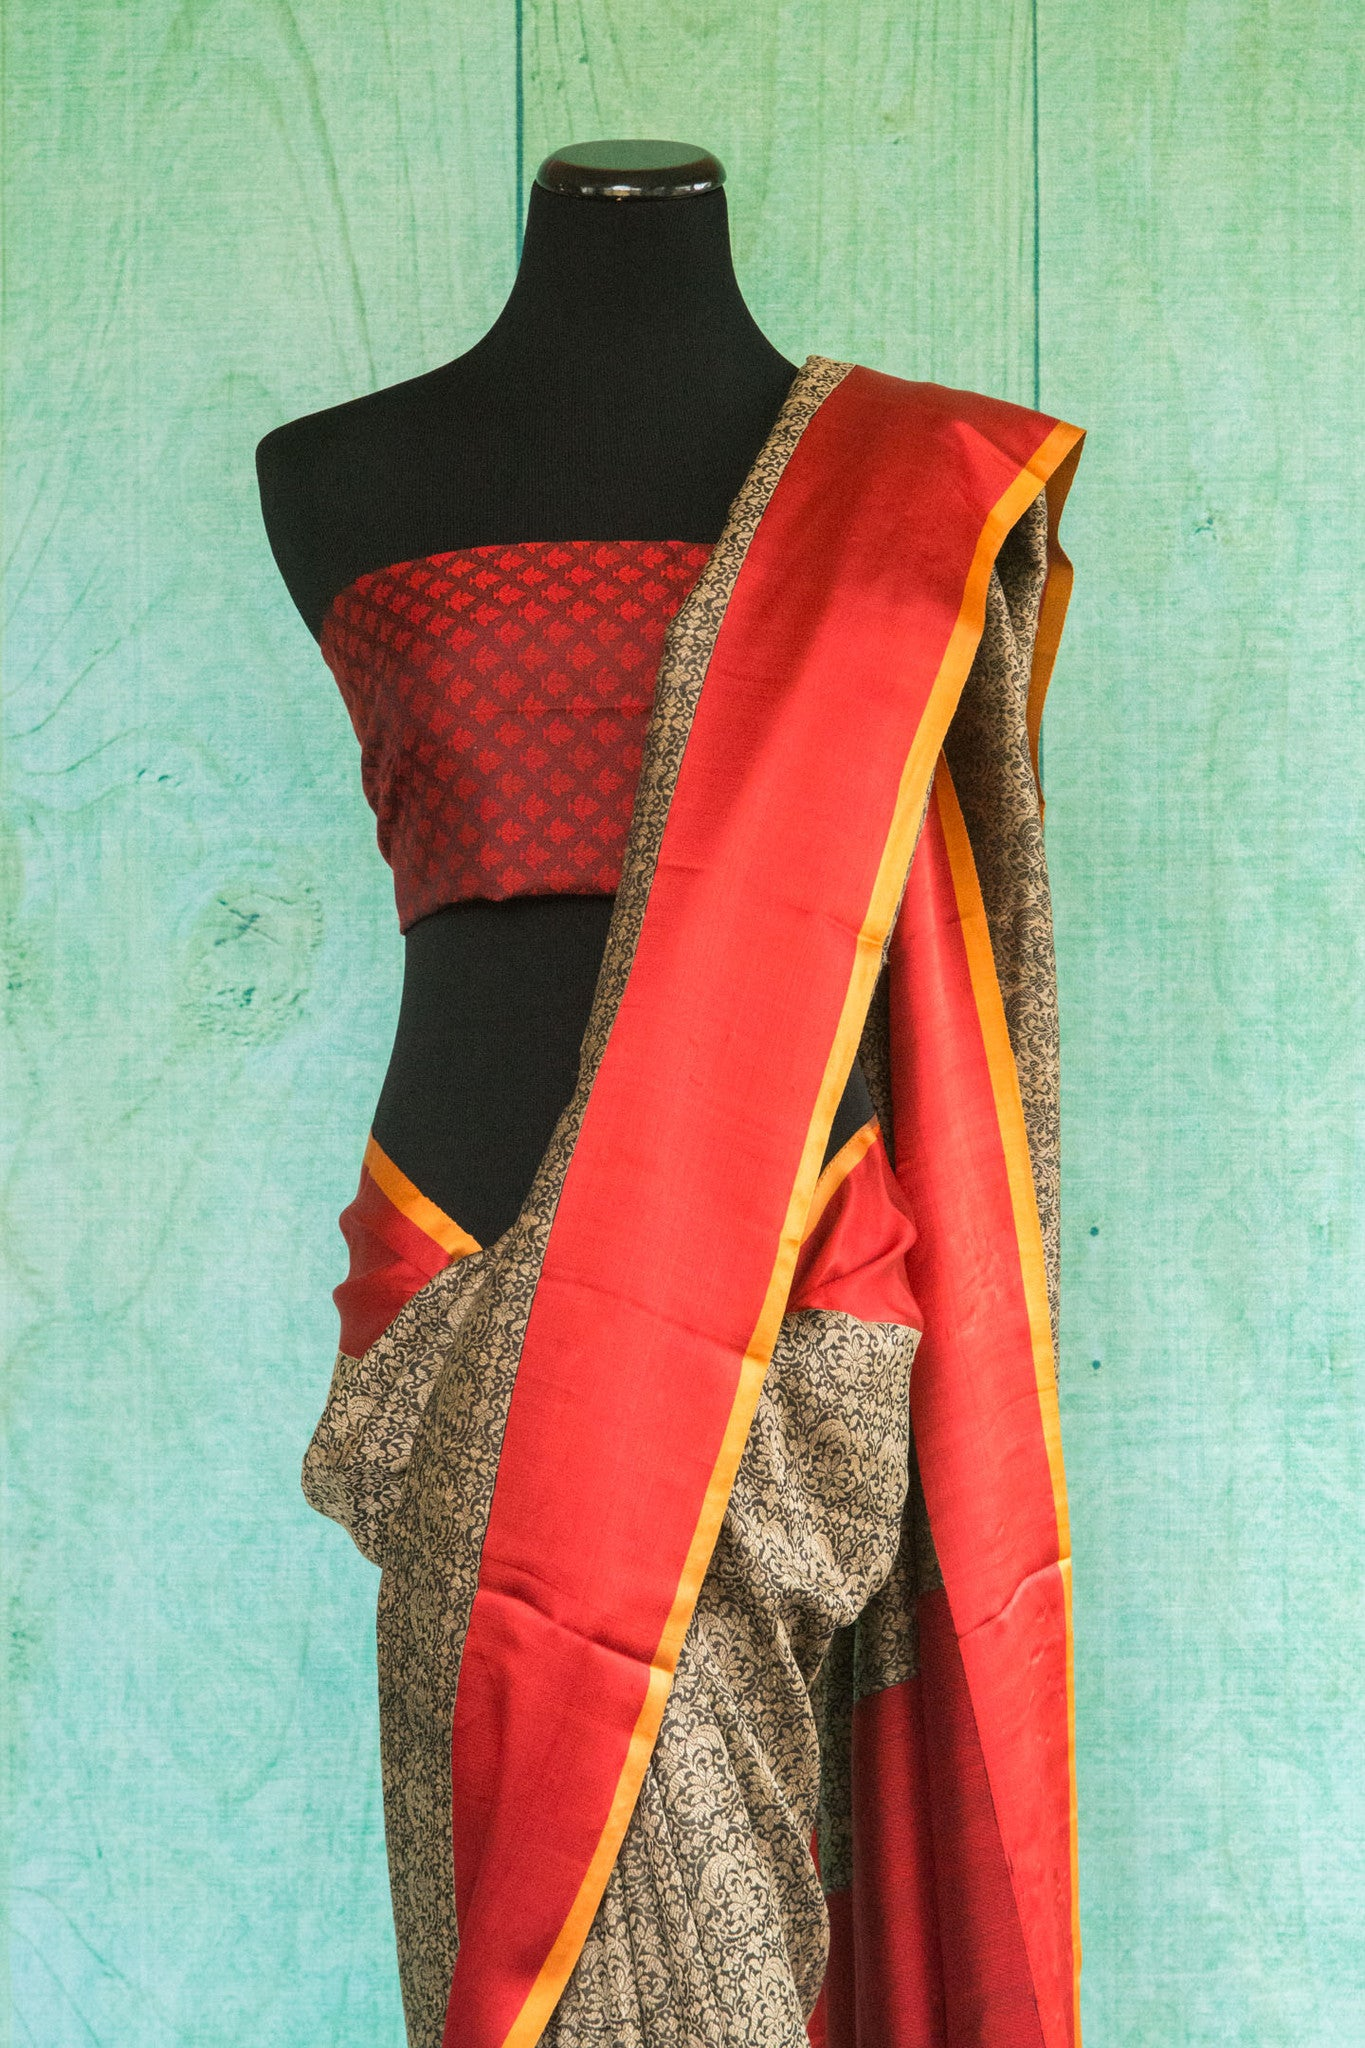 90c123 Buy this traditional woven saree from Banaras online in USA. The grey saree with red border and red blouse is an evergreen pick for your Indian clothing collection.